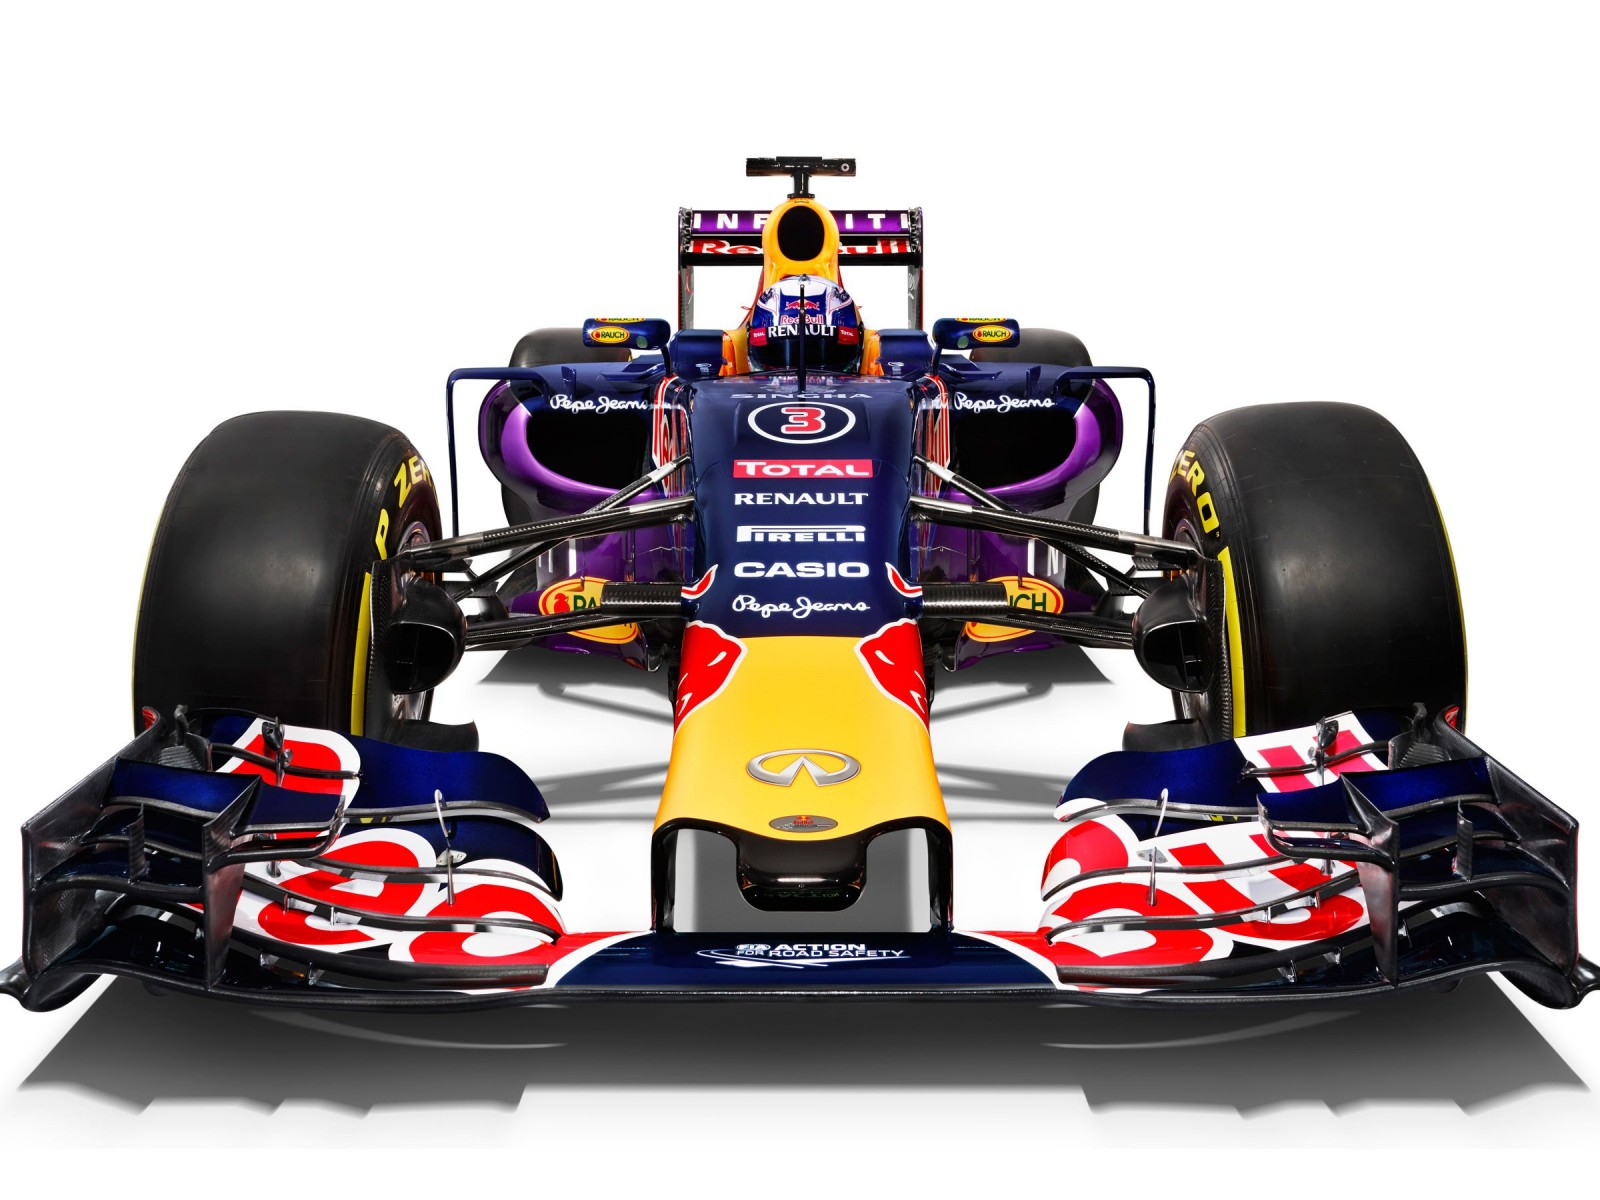 Infiniti Red Bull Racing RB11 2015 Formula 1 Car Wallpaper for Desktop 1600x1200